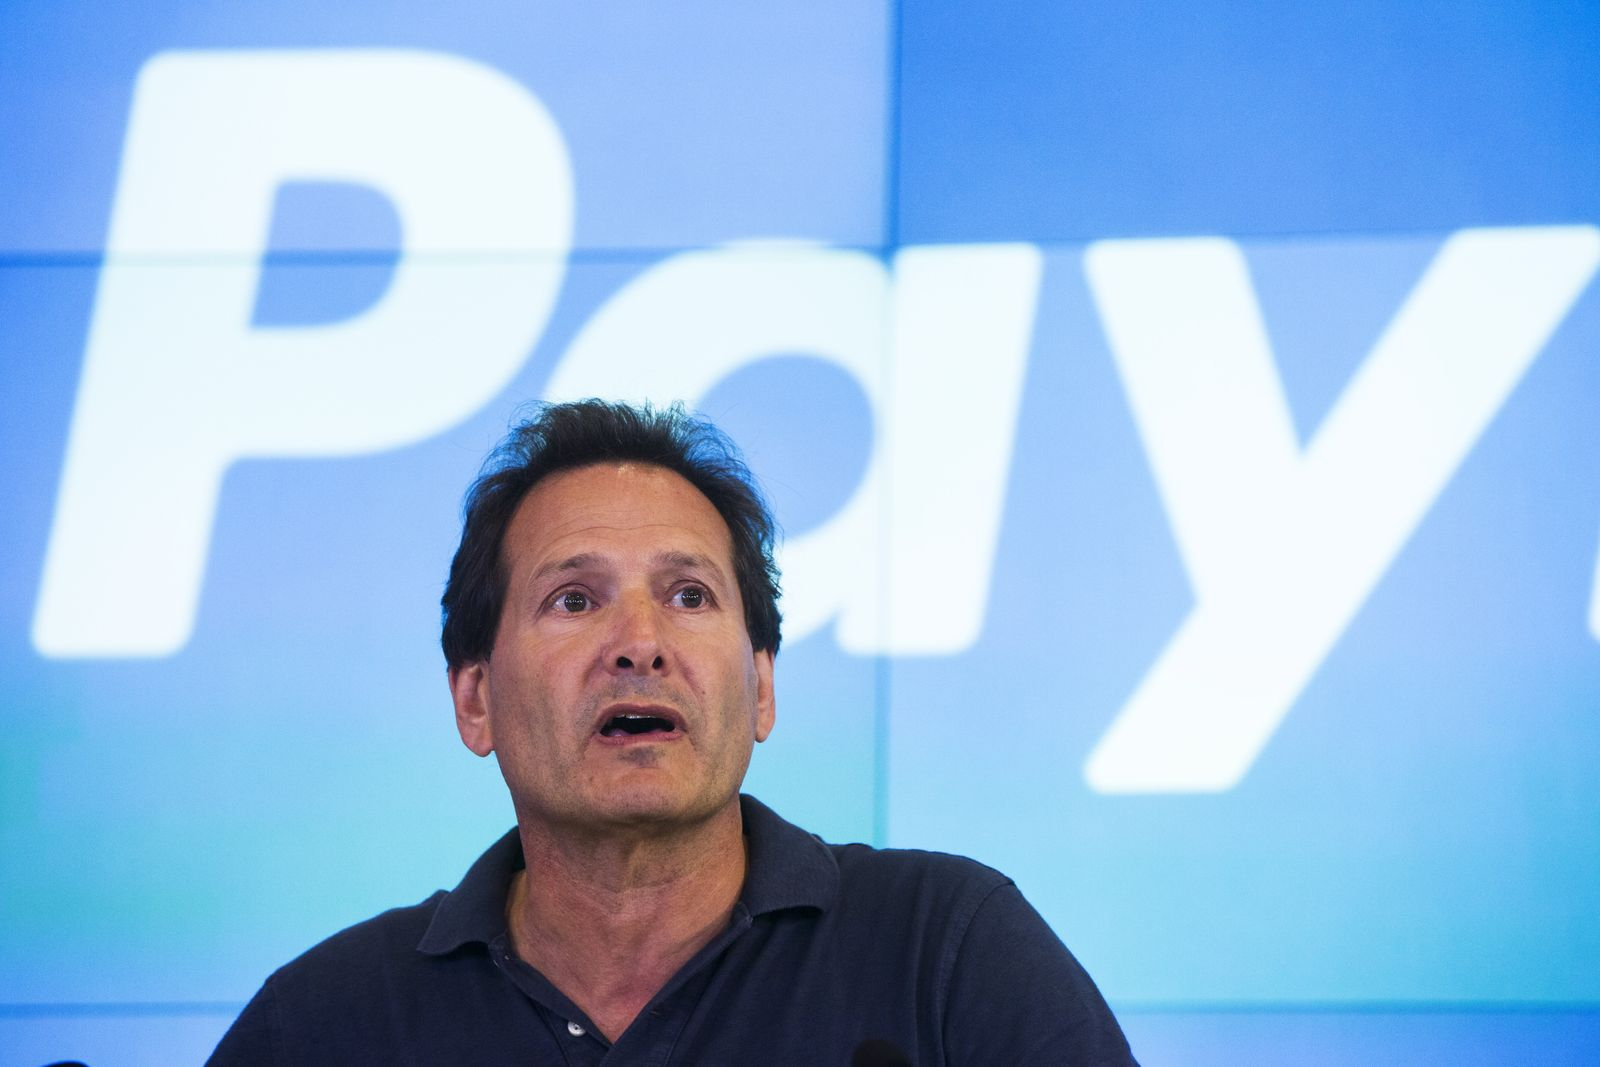 Paypal CEO Dan Schulman takes part in the company's relisting on the Nasdaq in New York